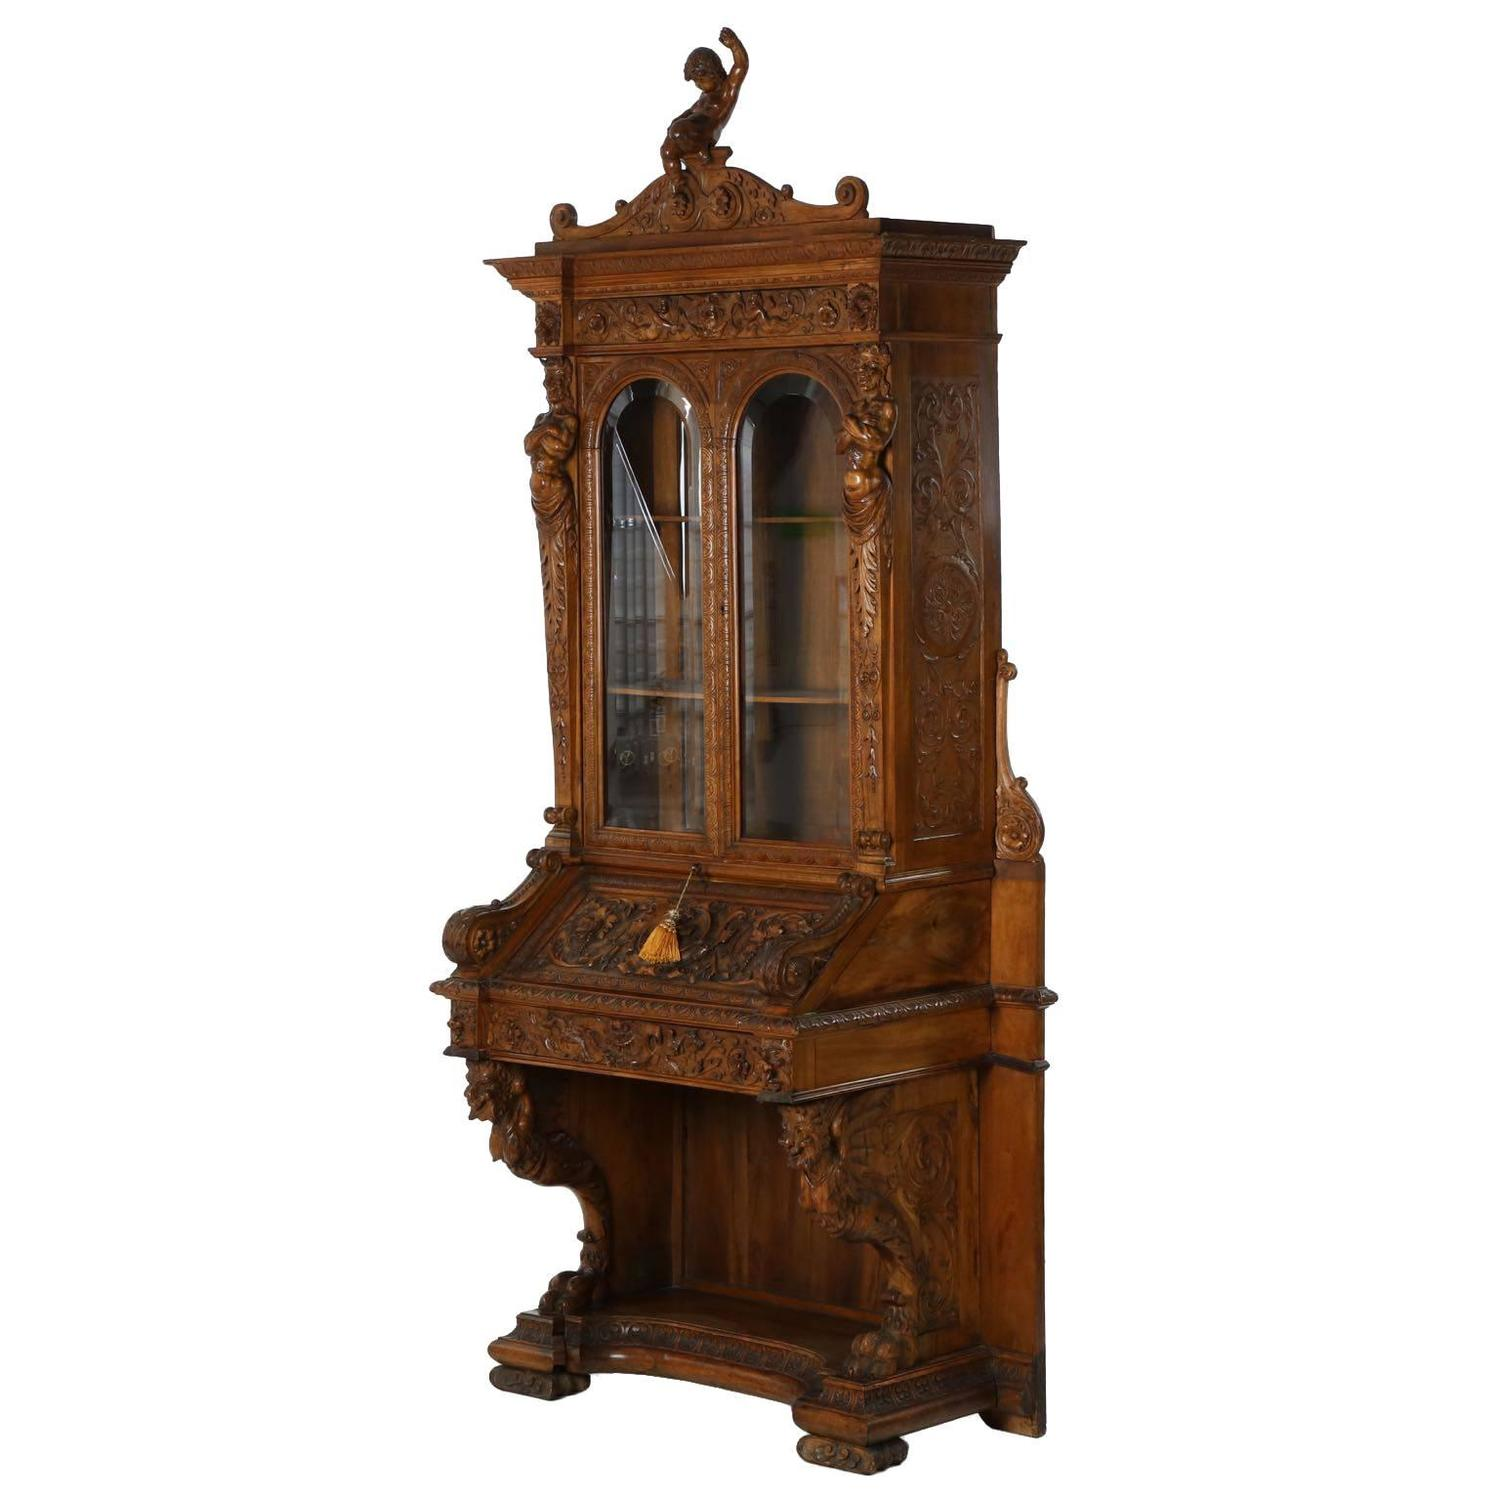 Italian Renaissance Revival Antique Secretary Desk with Bookcase, 19th  Century at 1stdibs - Italian Renaissance Revival Antique Secretary Desk With Bookcase